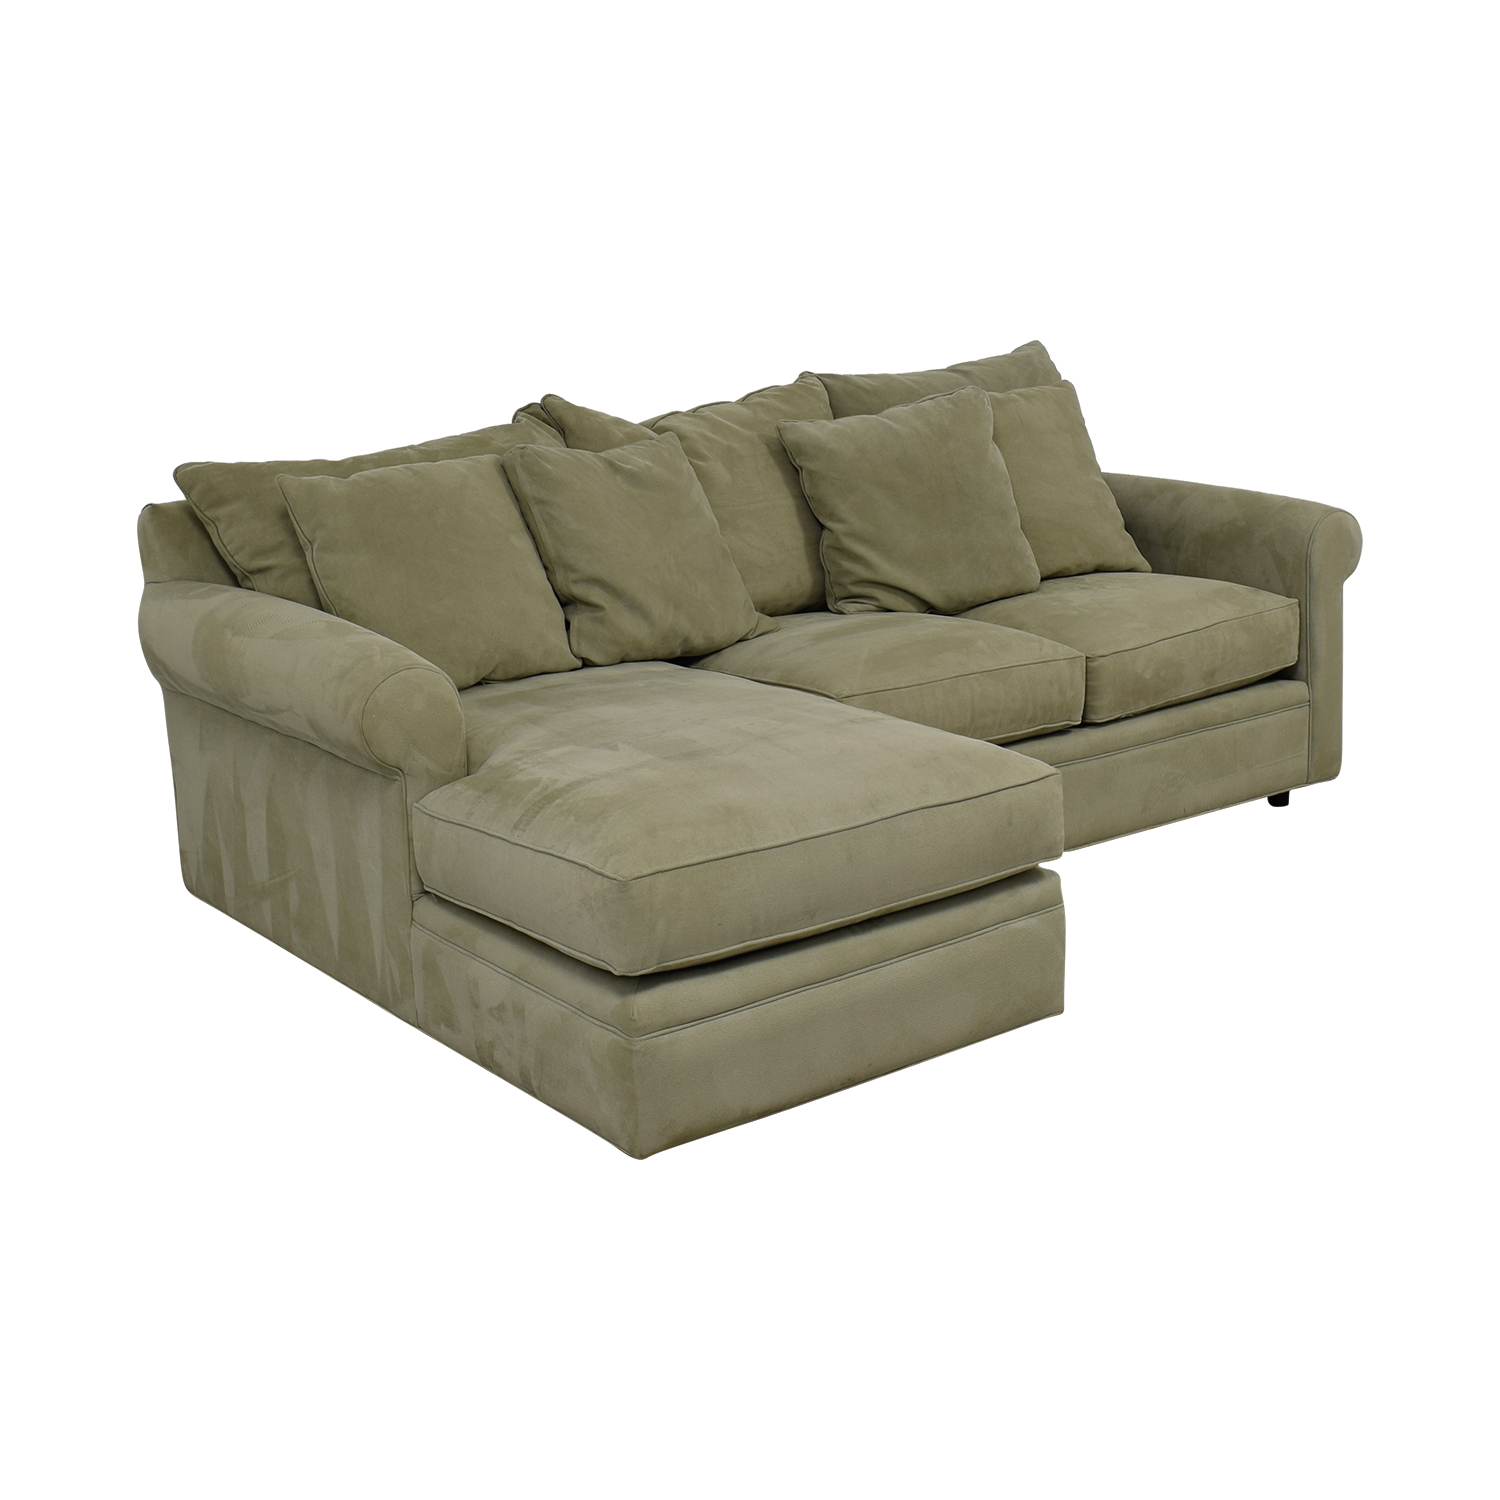 Merveilleux ... Buy Modern Concepts Doss II Grey Chaise Sectional Modern Concepts Sofas  ...